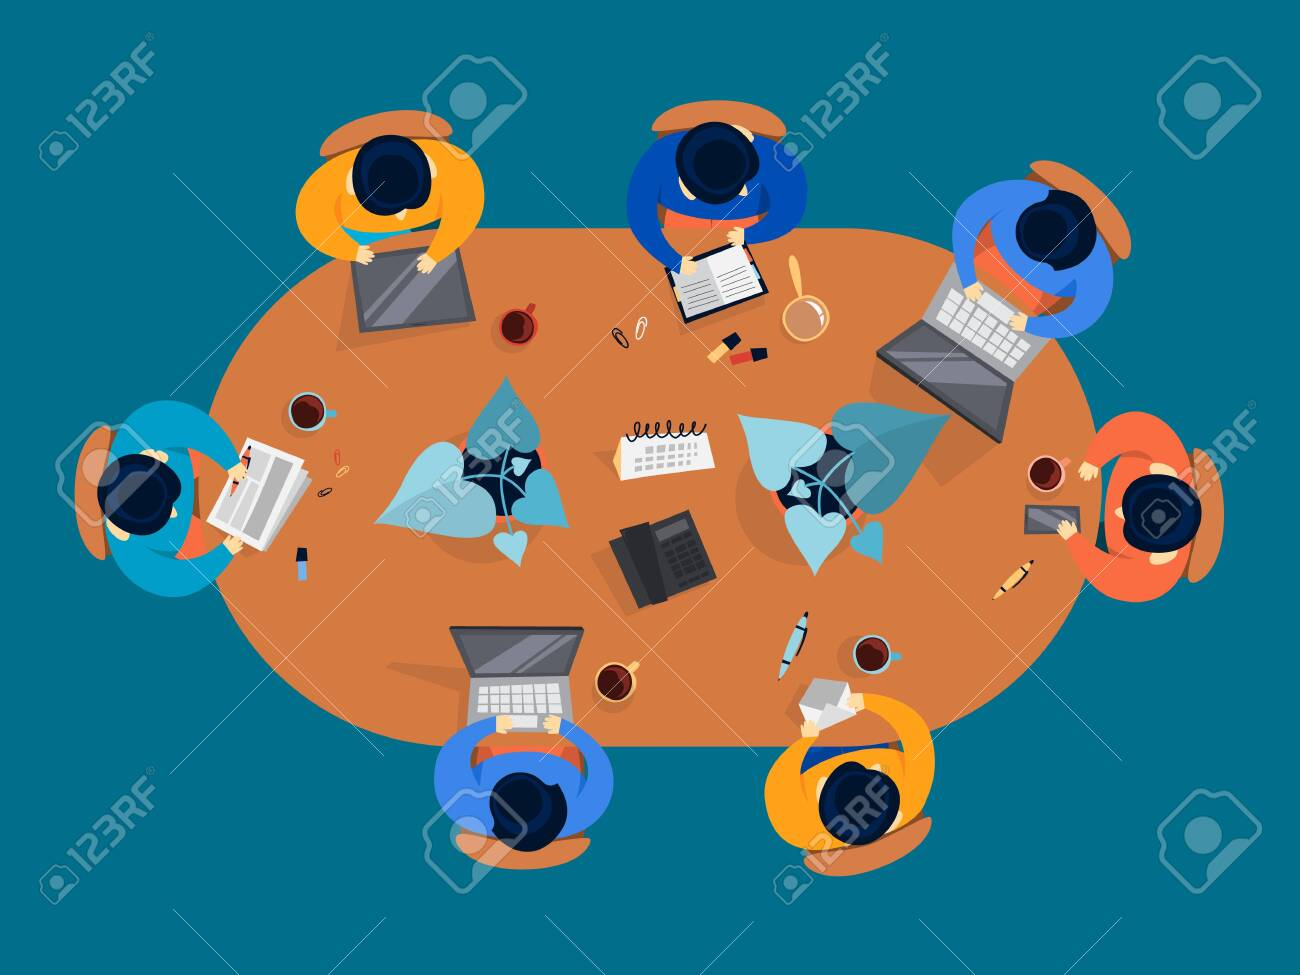 Group of people on a conference. Workers sitting around the table on the meeting. Office conference room. Teamwork top view. Vector illustration in cartoon style - 124129814